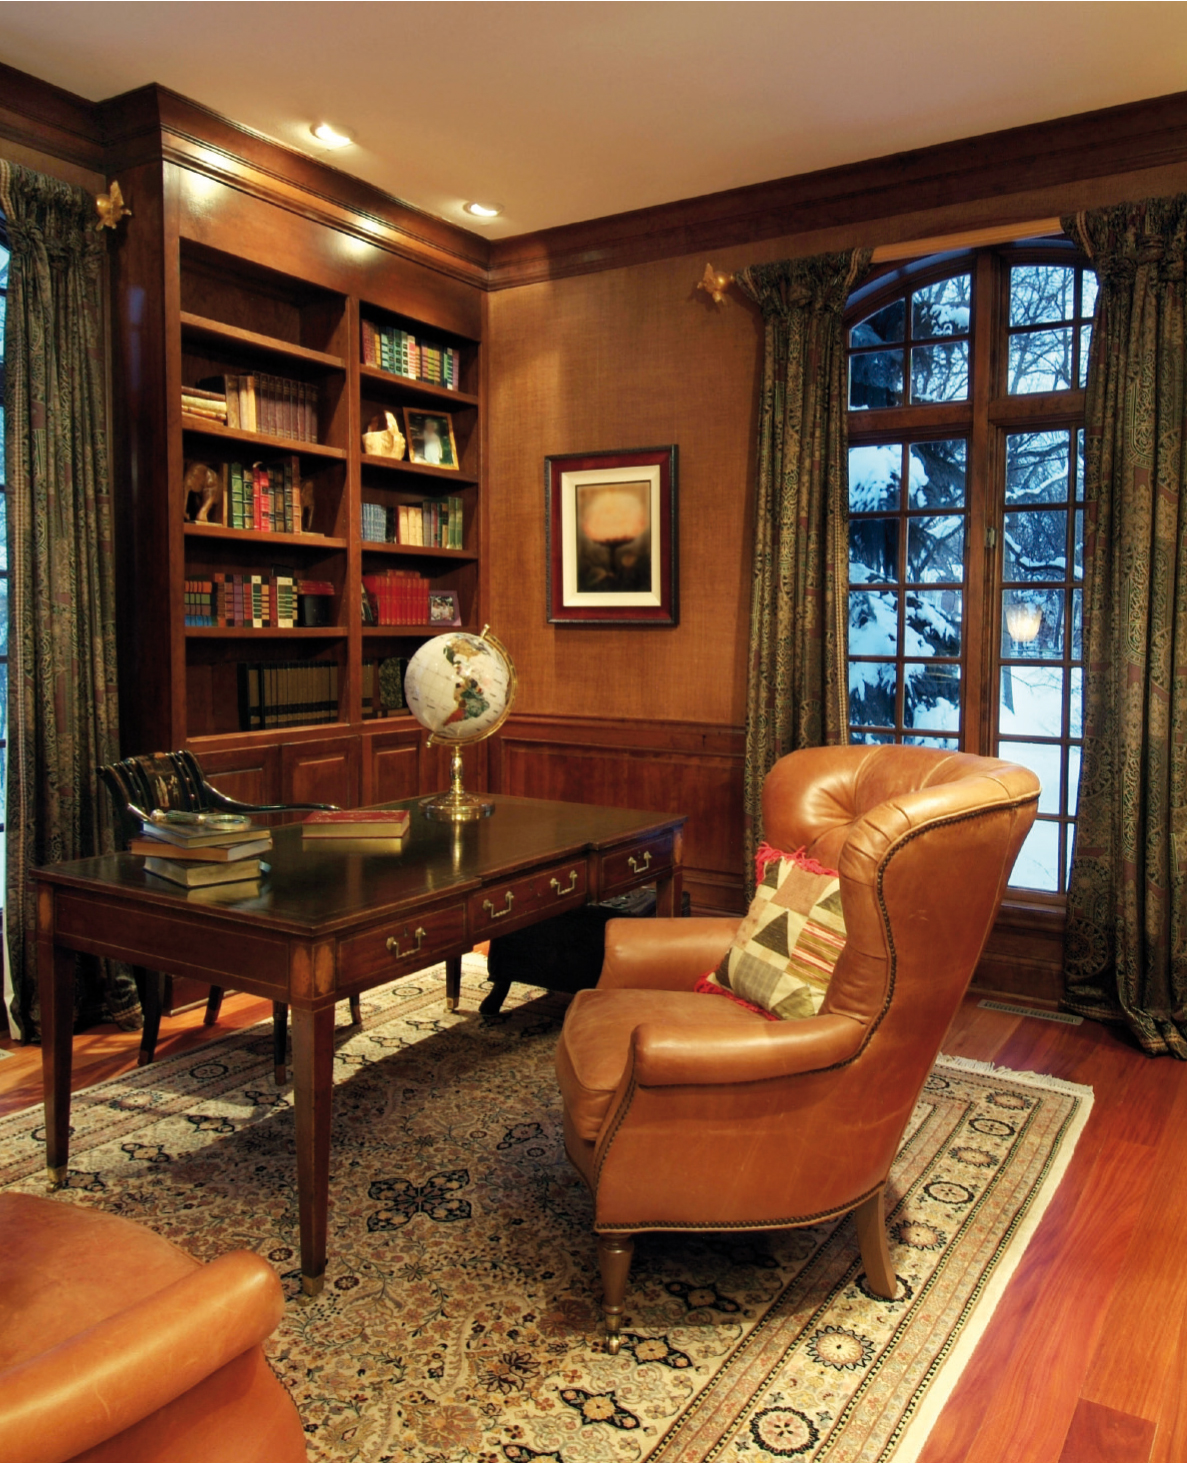 Home Office Decorating Ideas: The Gentleman's Room: Creating A Masculine Aesthetic